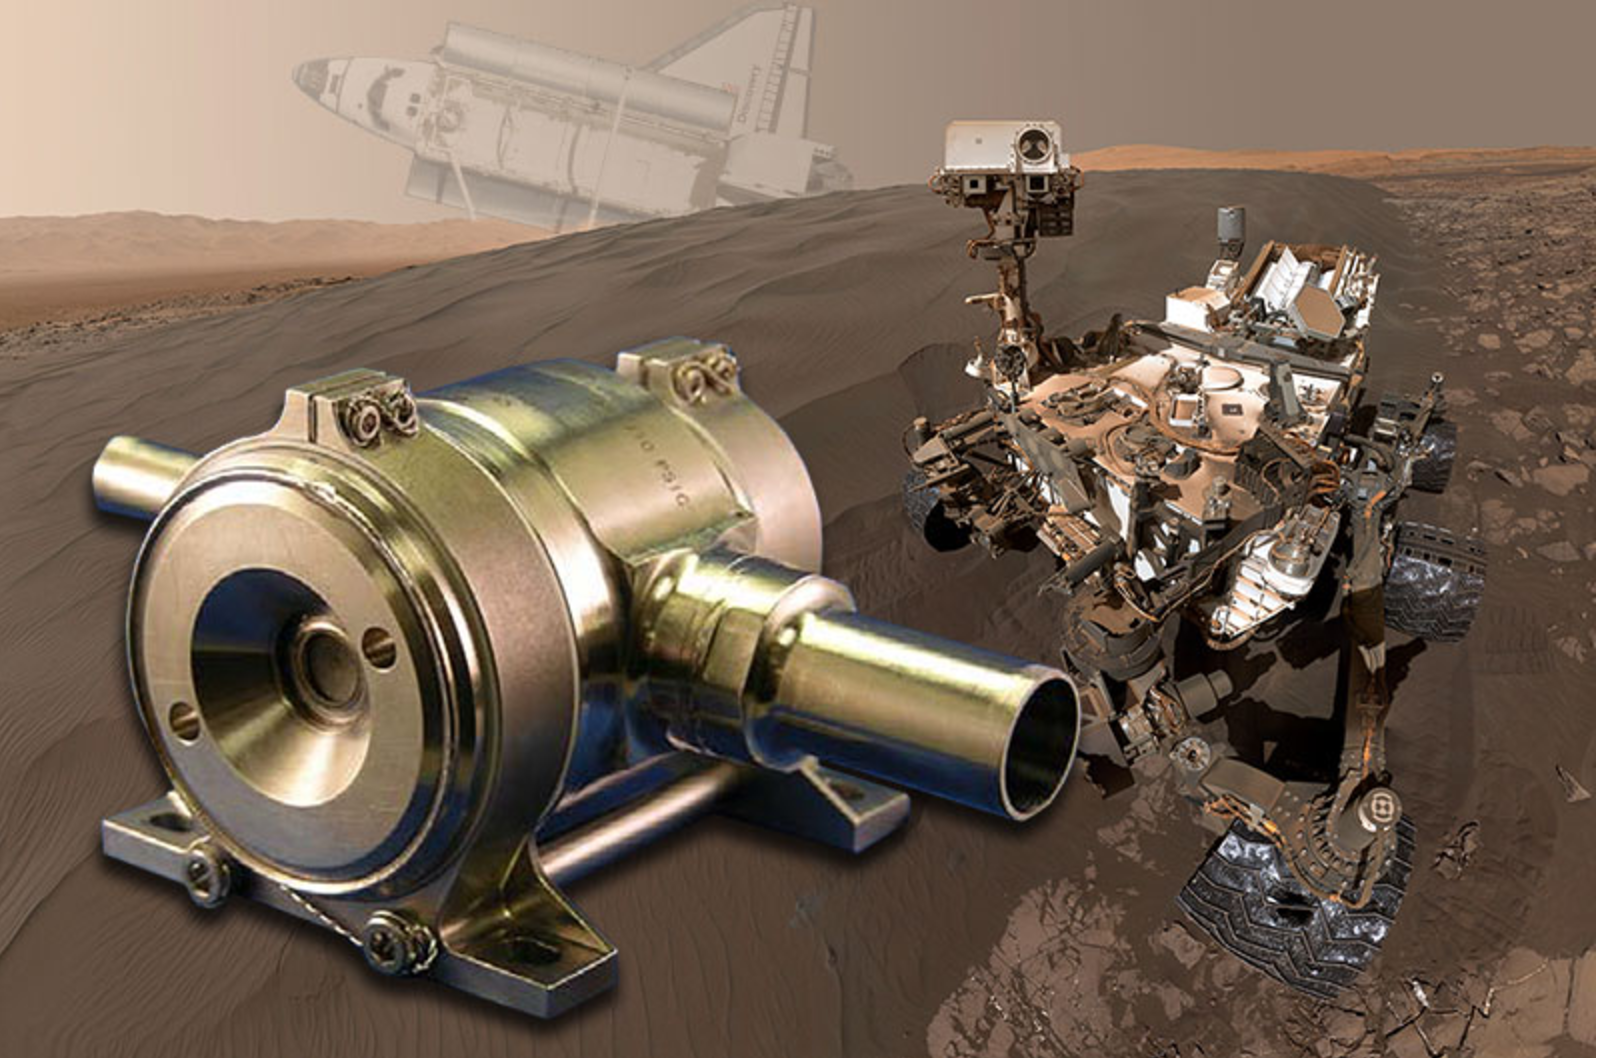 NASA's Curiosity Rover Completes 5 Years Of Mars Exploration